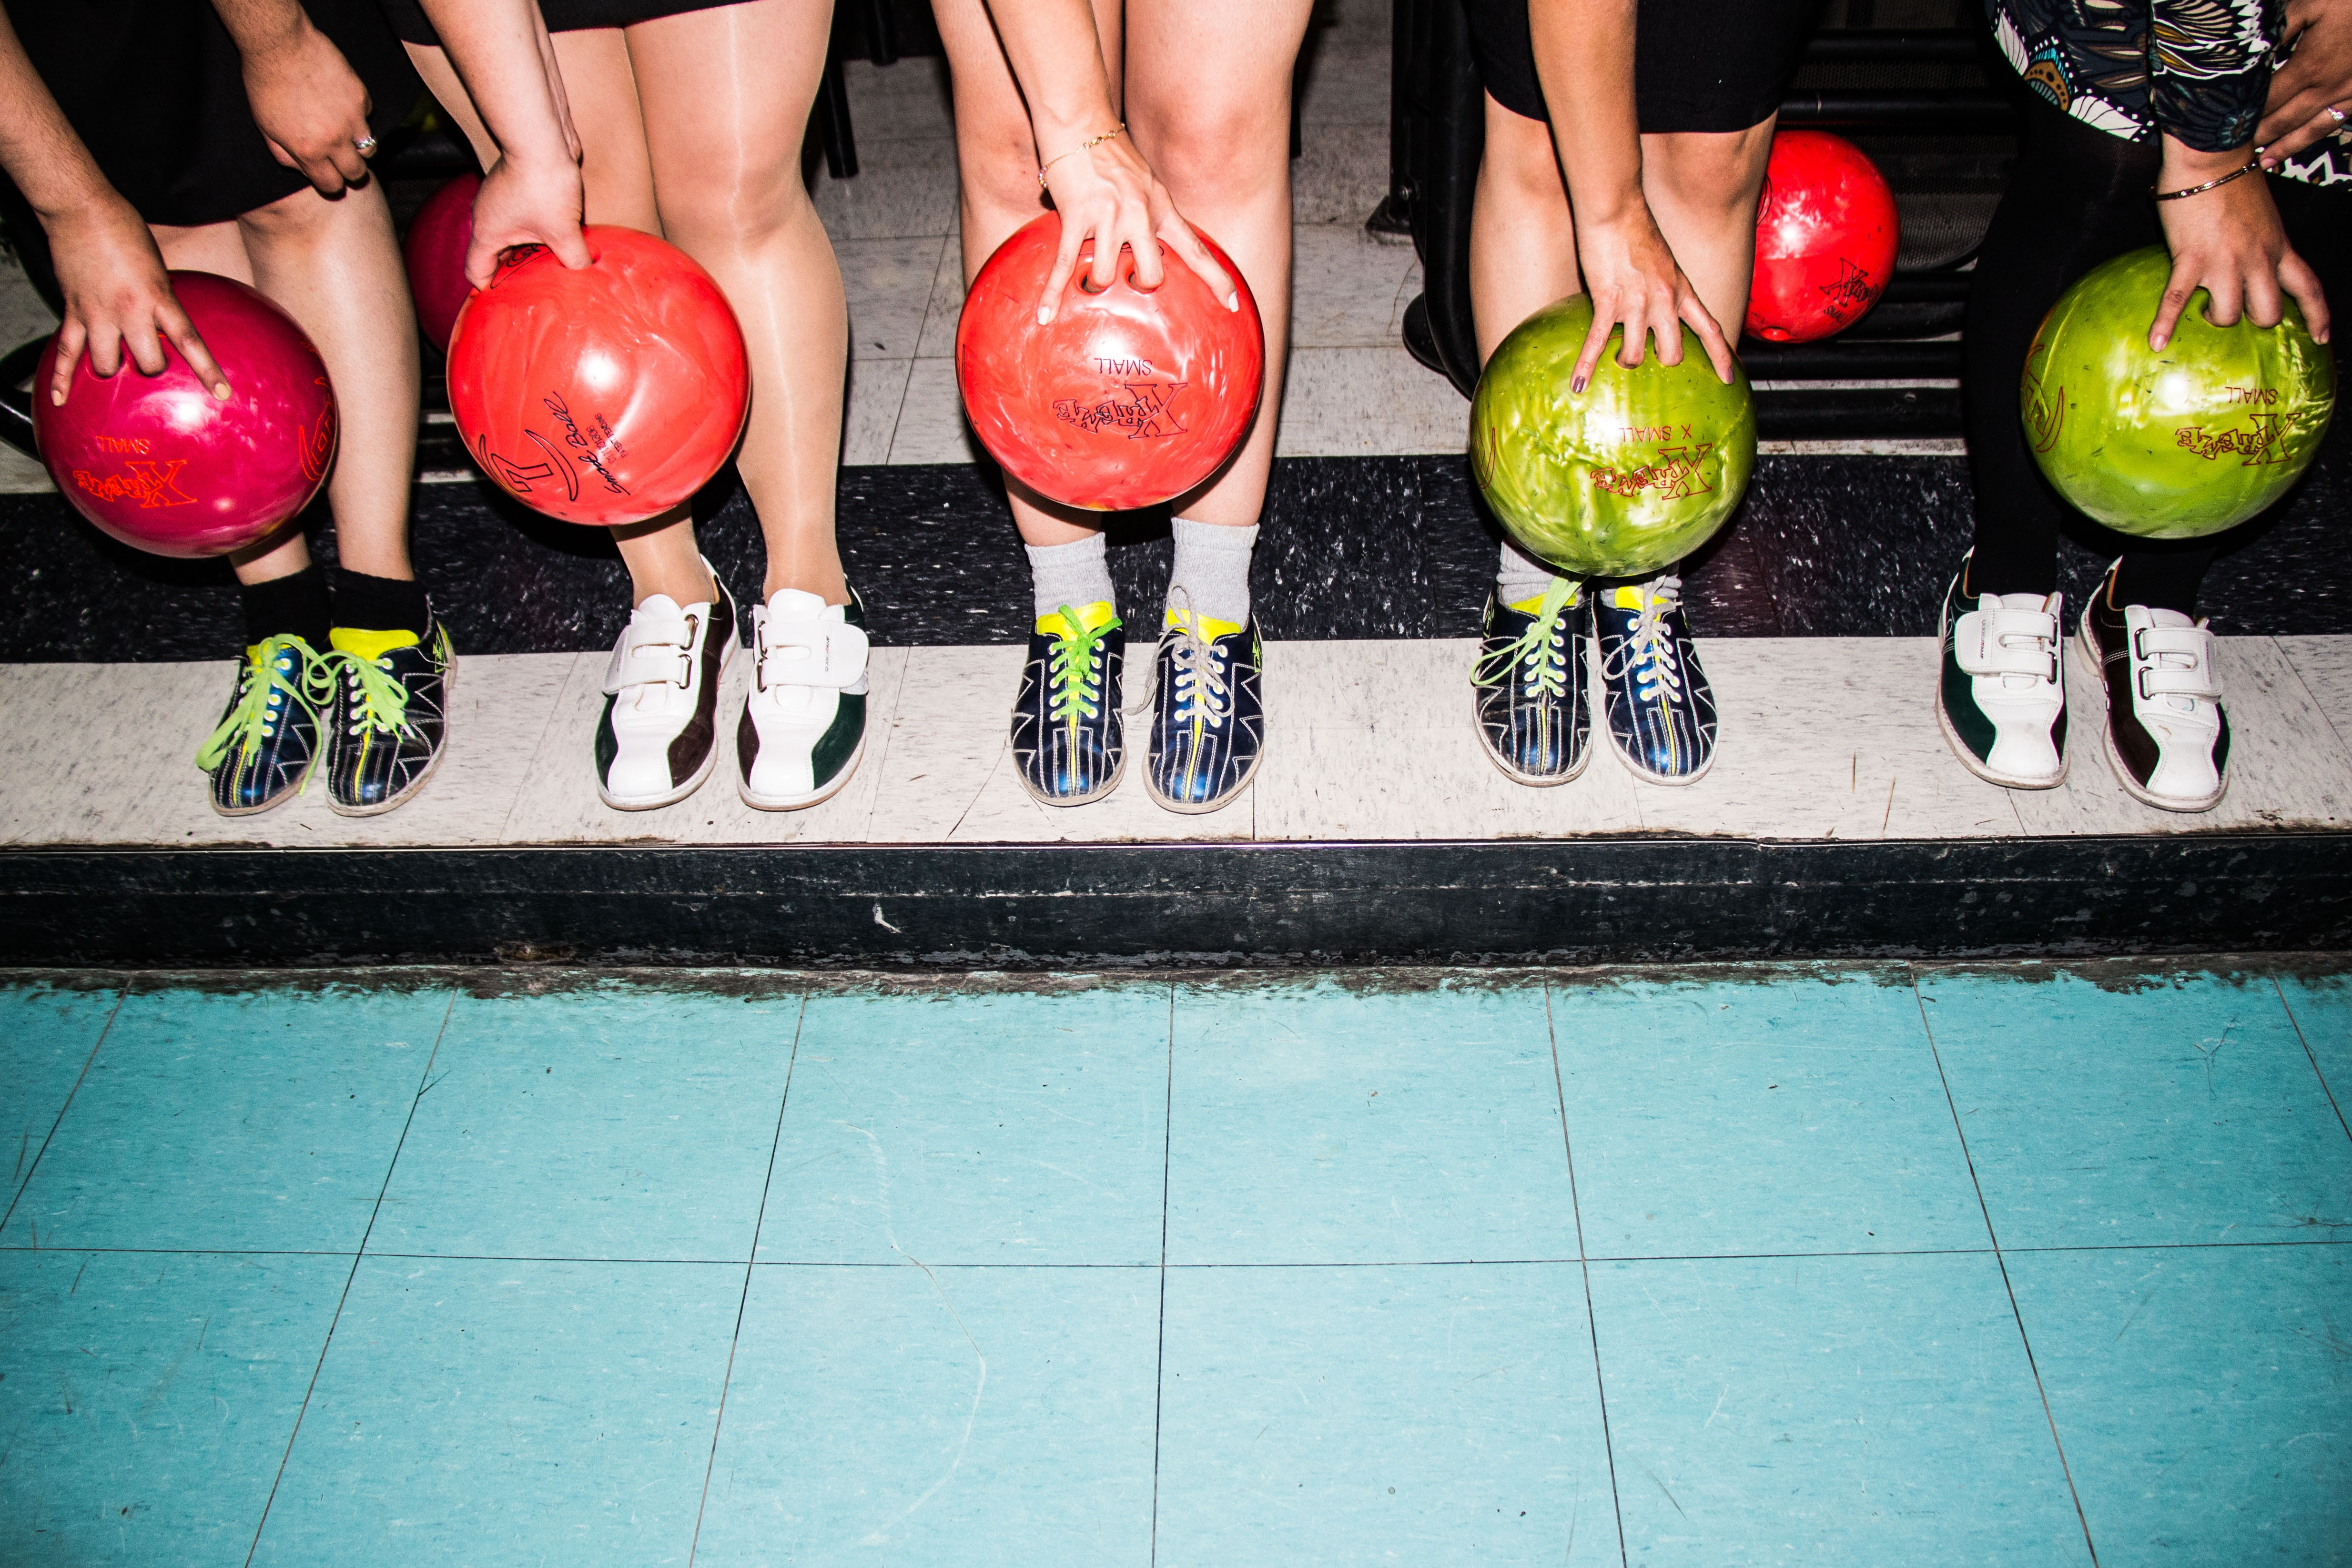 bowling event image